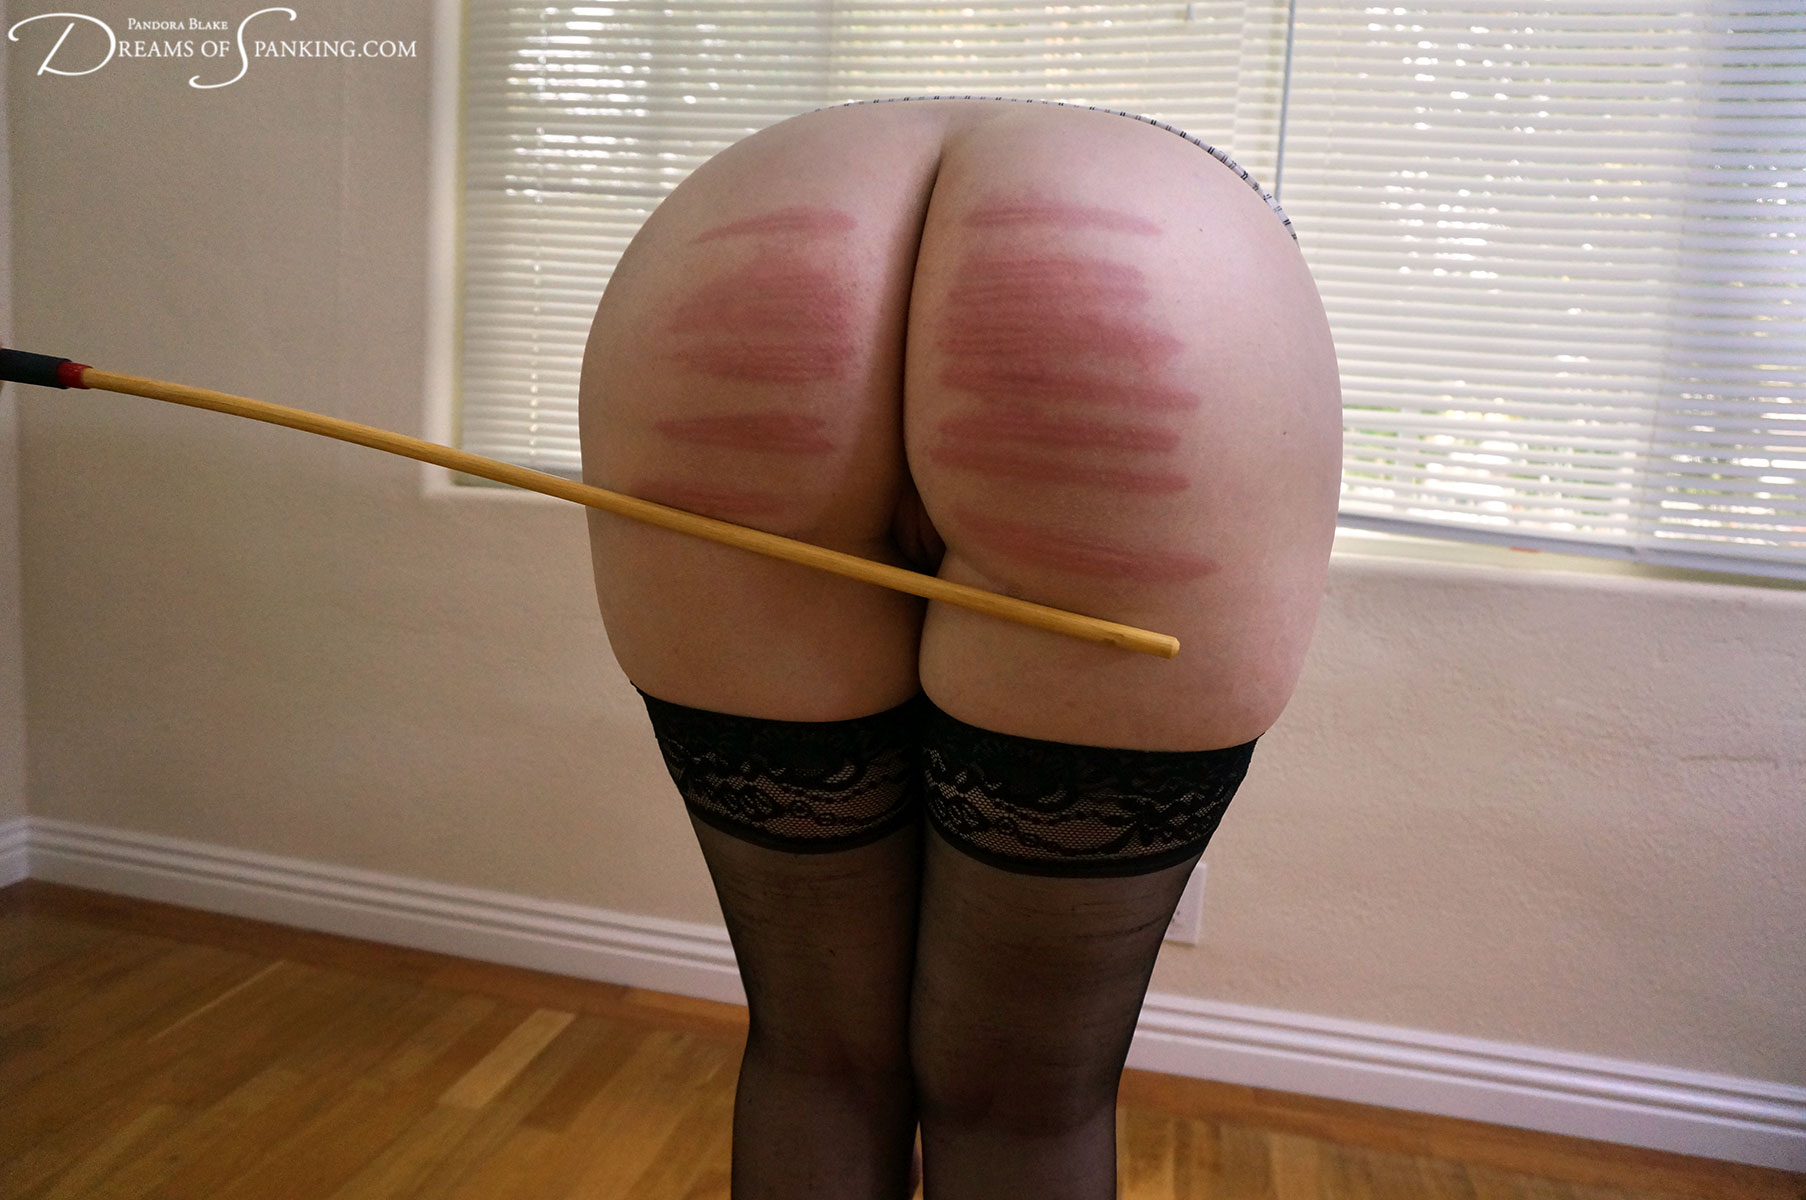 Pandora Blake takes twelve of the best at Dreams of Spanking